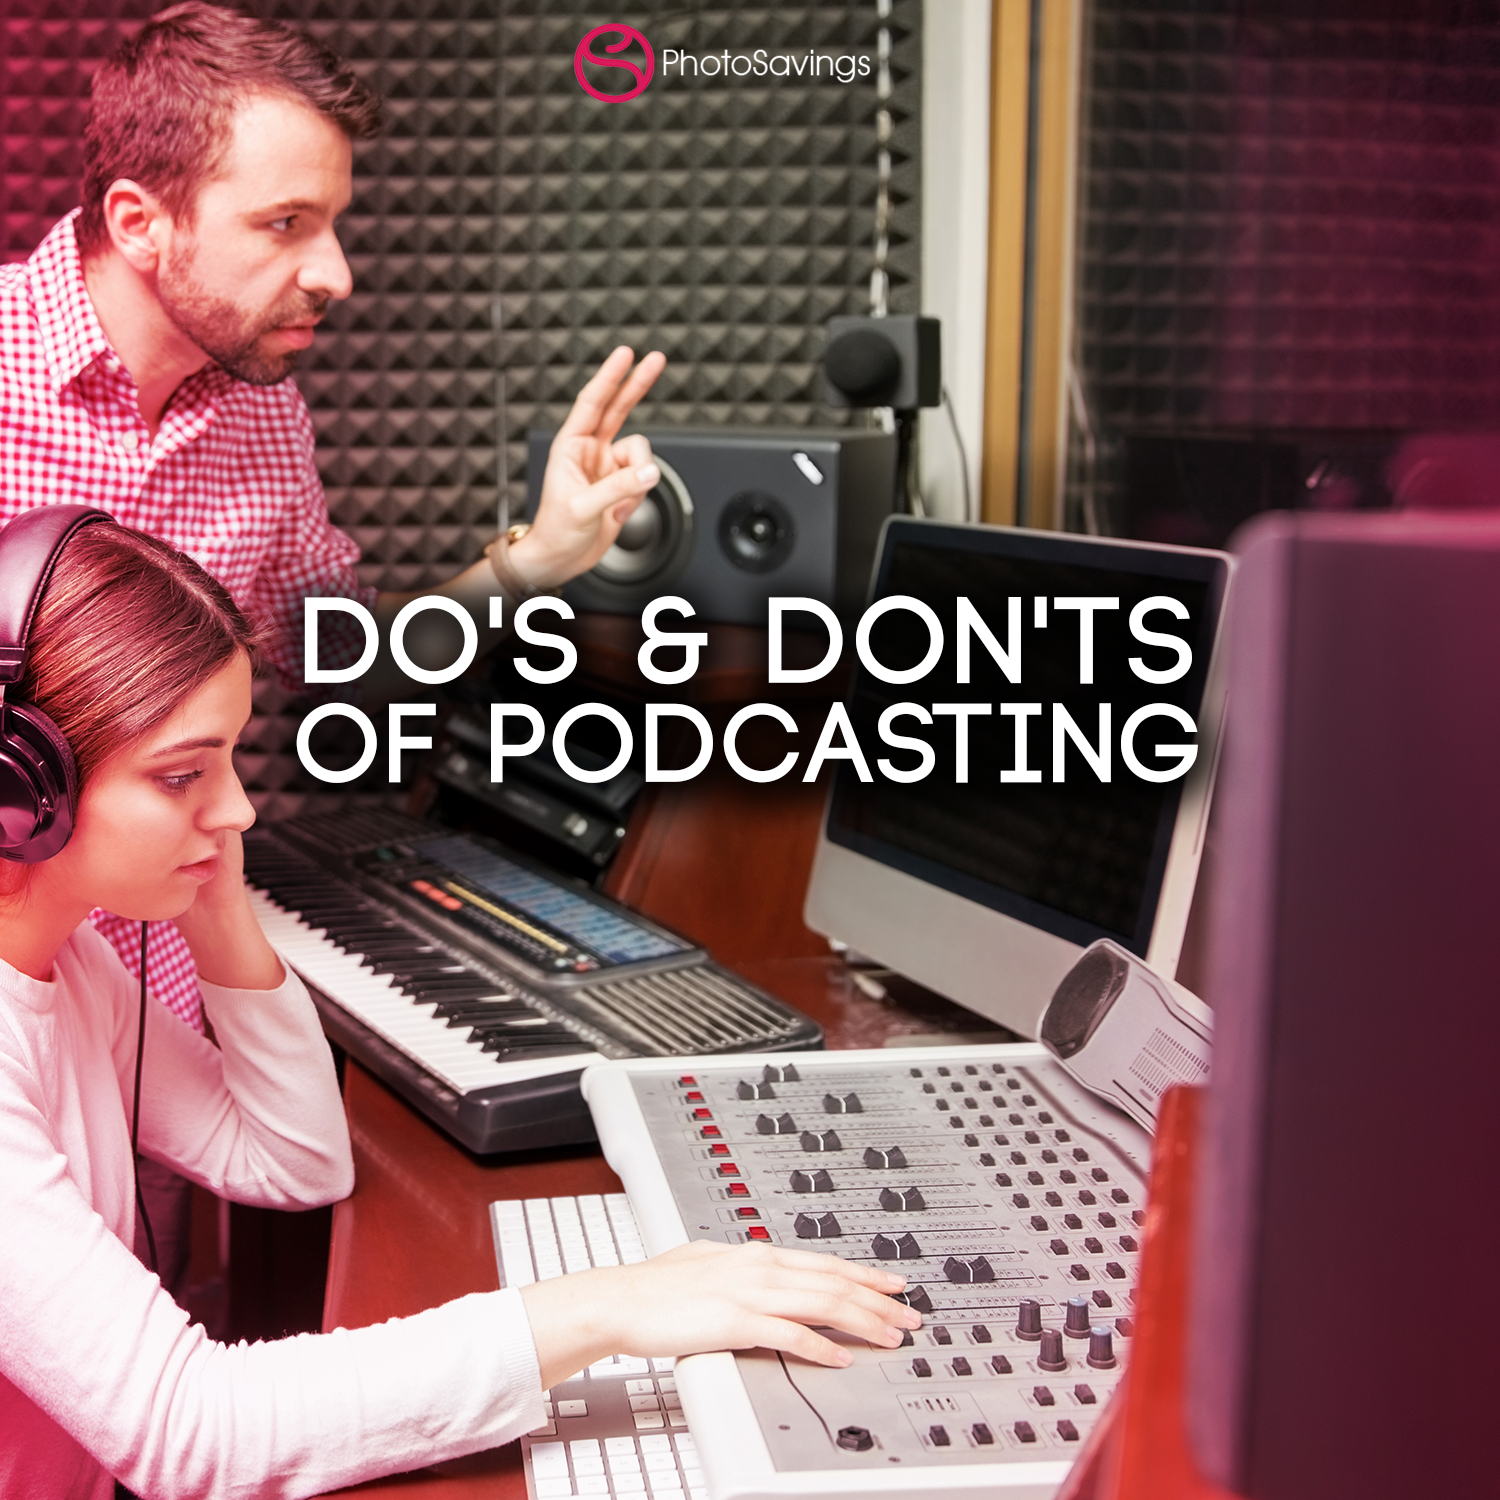 8 Essential Do's and Don'ts to Remember Before Launching a Podcast